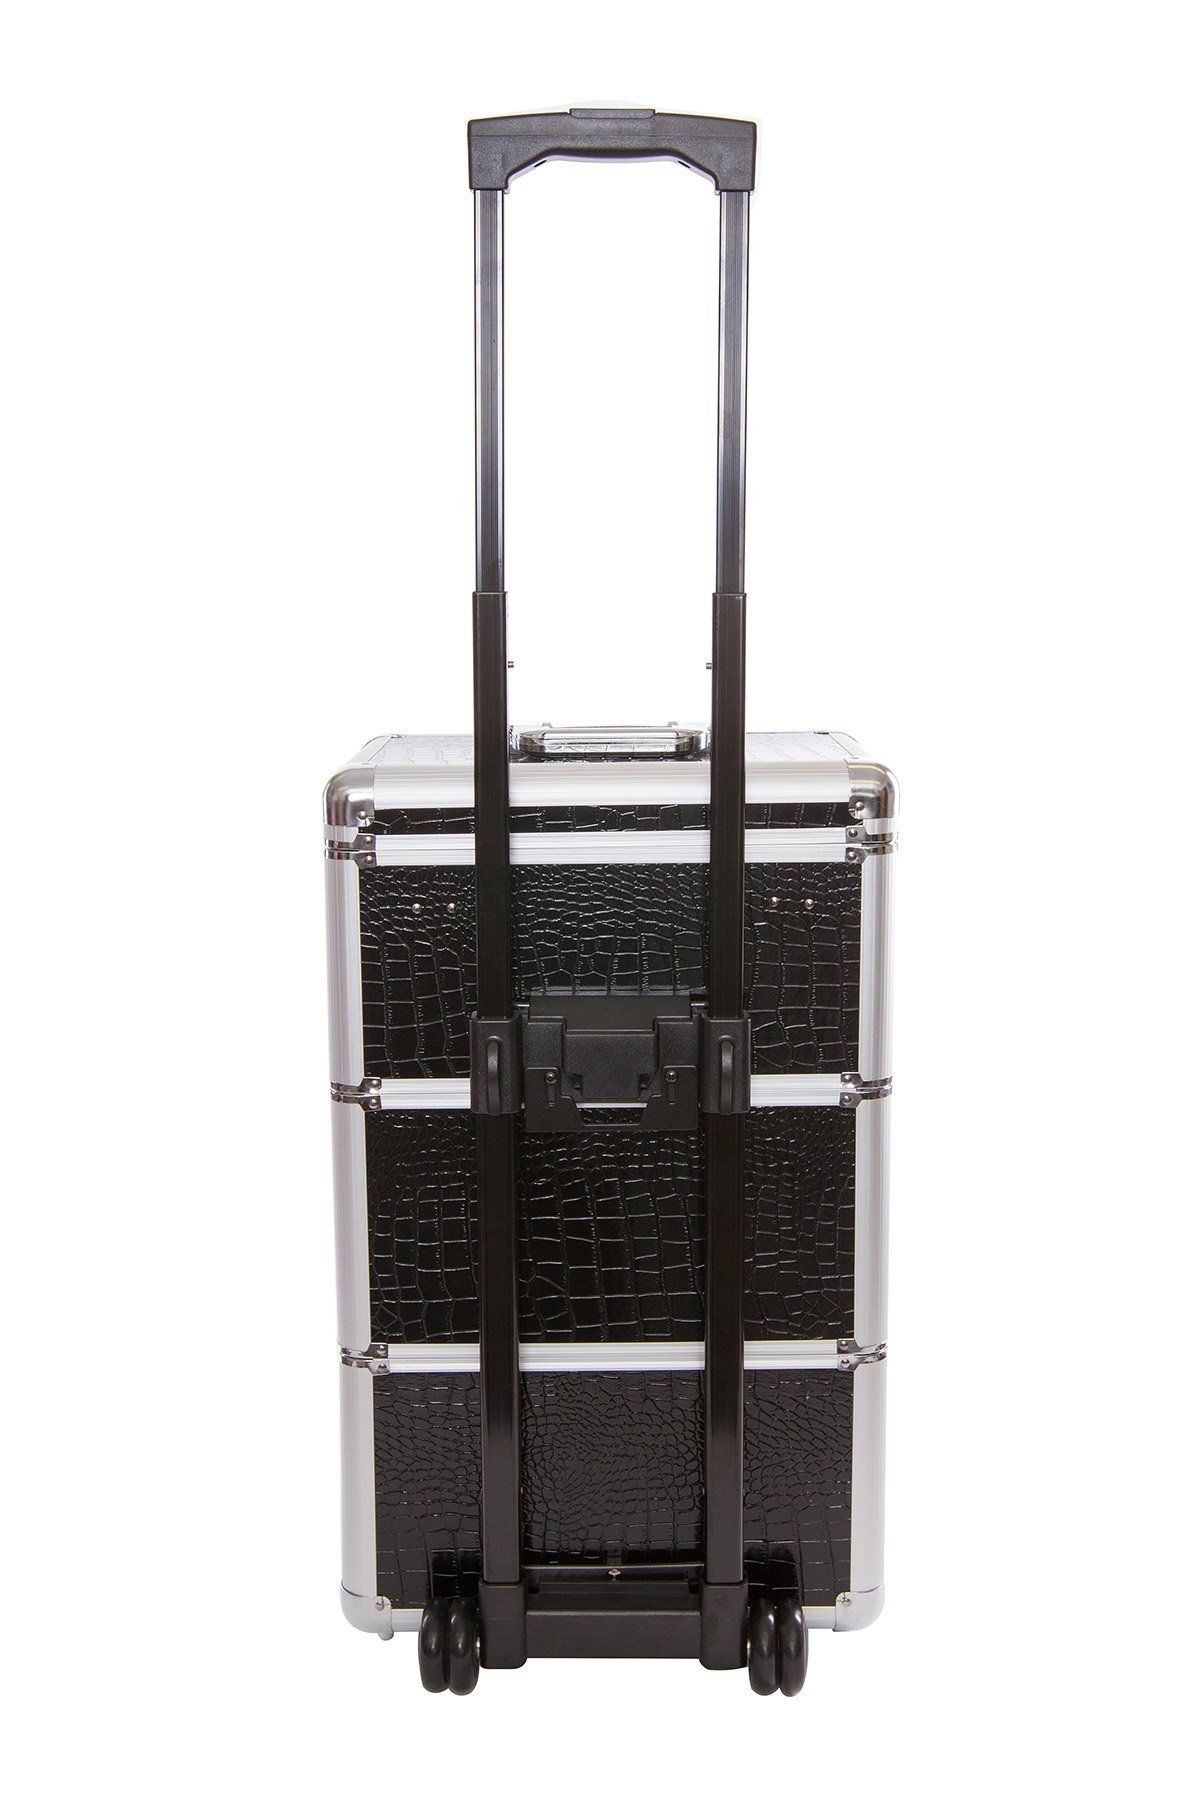 This 2tier silver aluminium cosmetic travel_trolley case